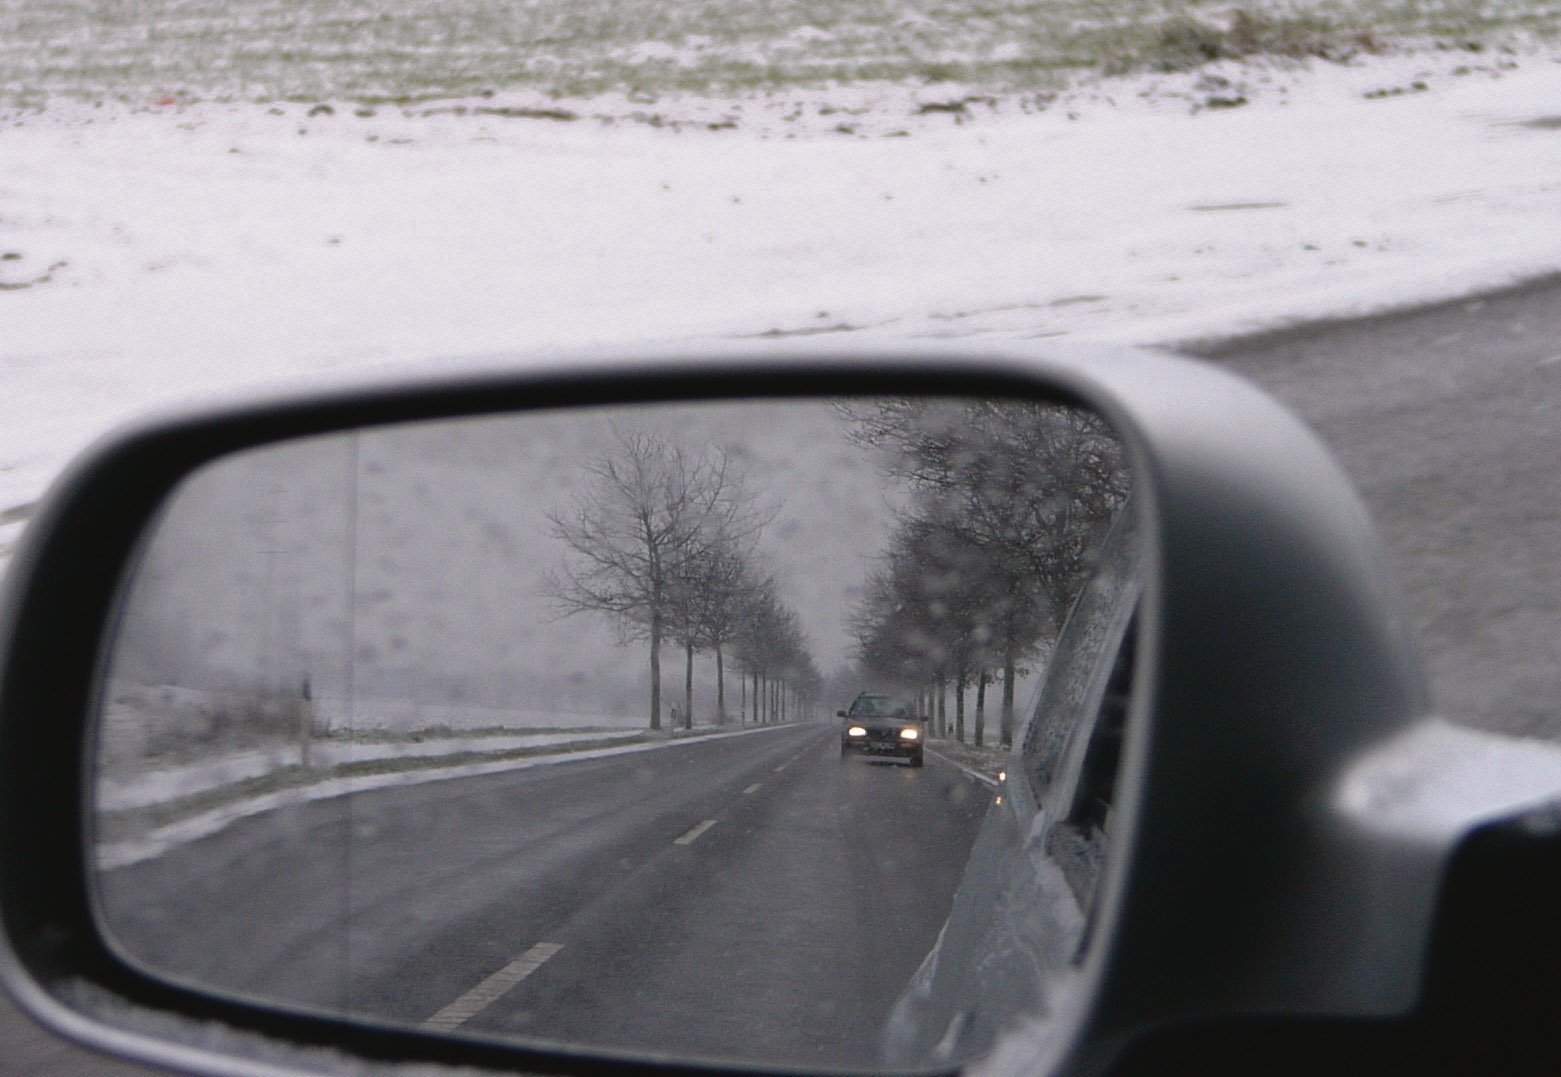 Winter driving.snow.car.wing mirror.ice.road.